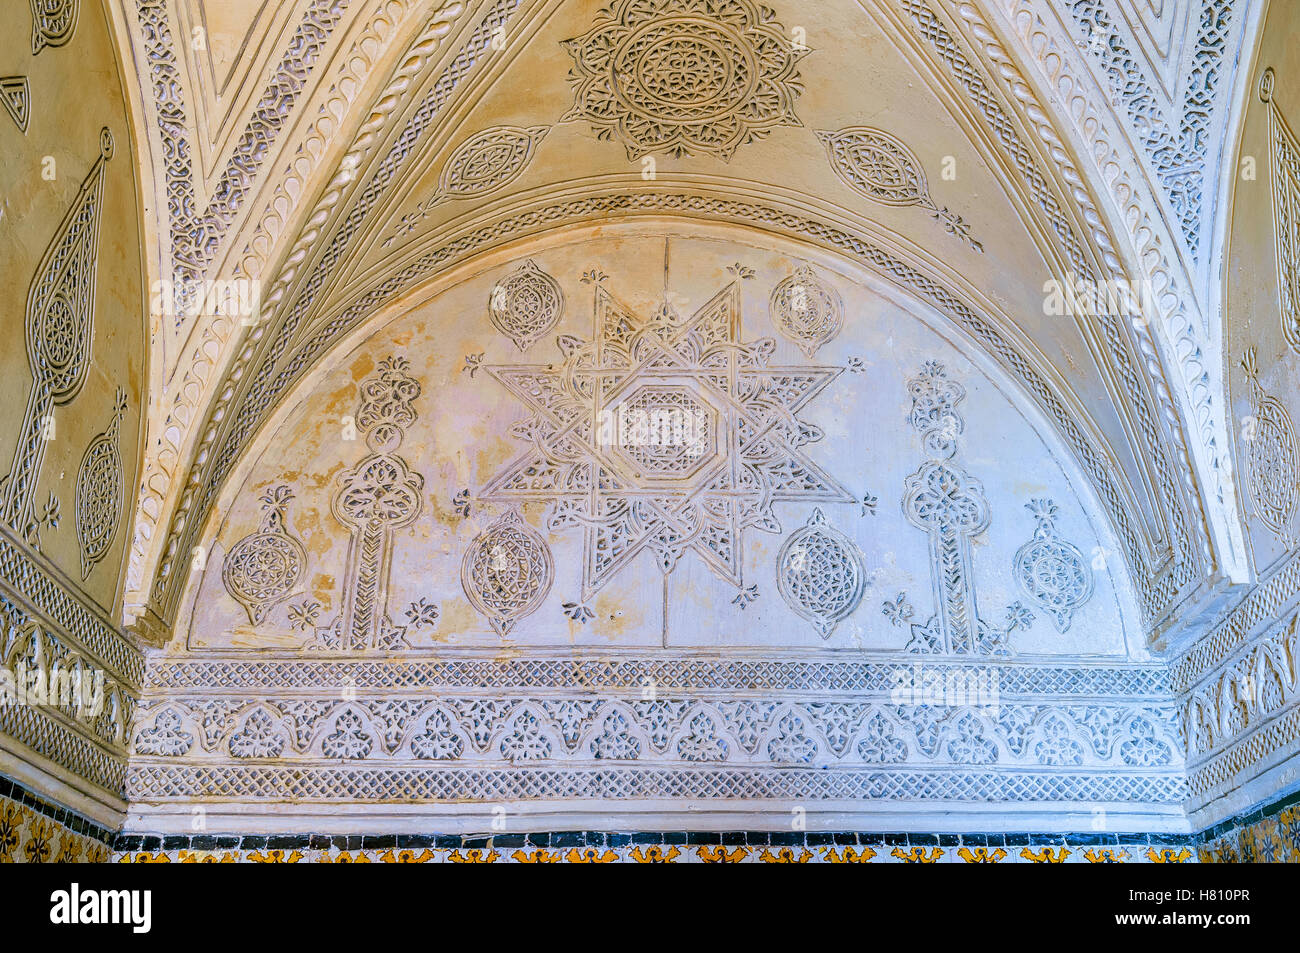 The old mansion decorated in Andalusian style with the carved islamic patterns on walls and ceiling, El Kef - Stock Image